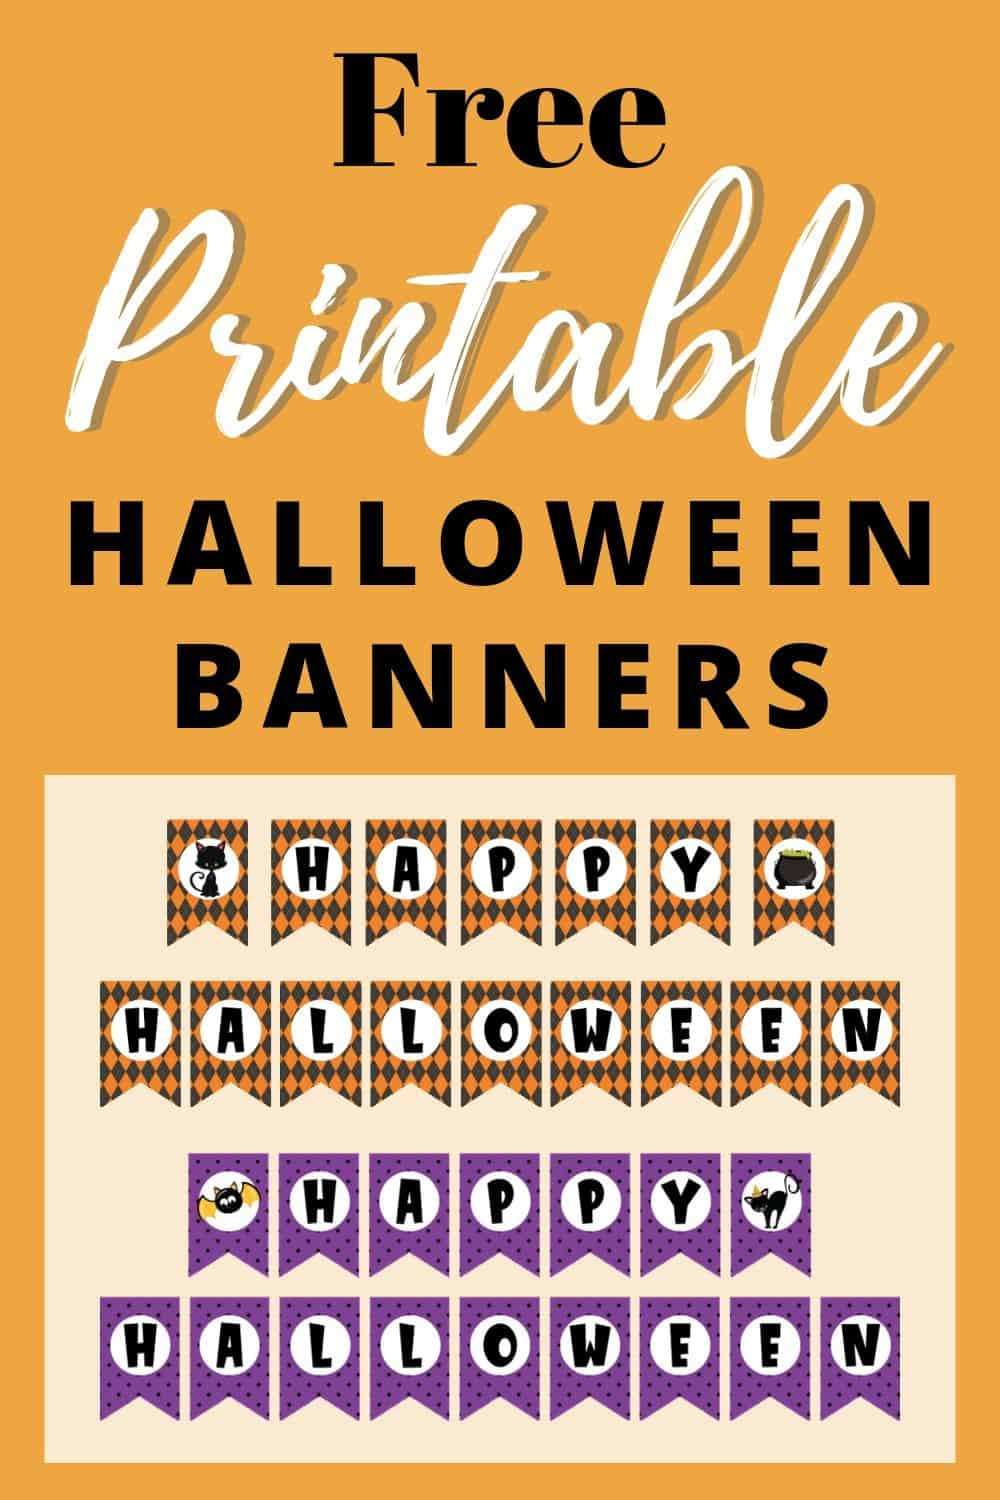 photo relating to Printable Halloween Banners titled No cost Printable Halloween Banner - The Artisan Everyday living